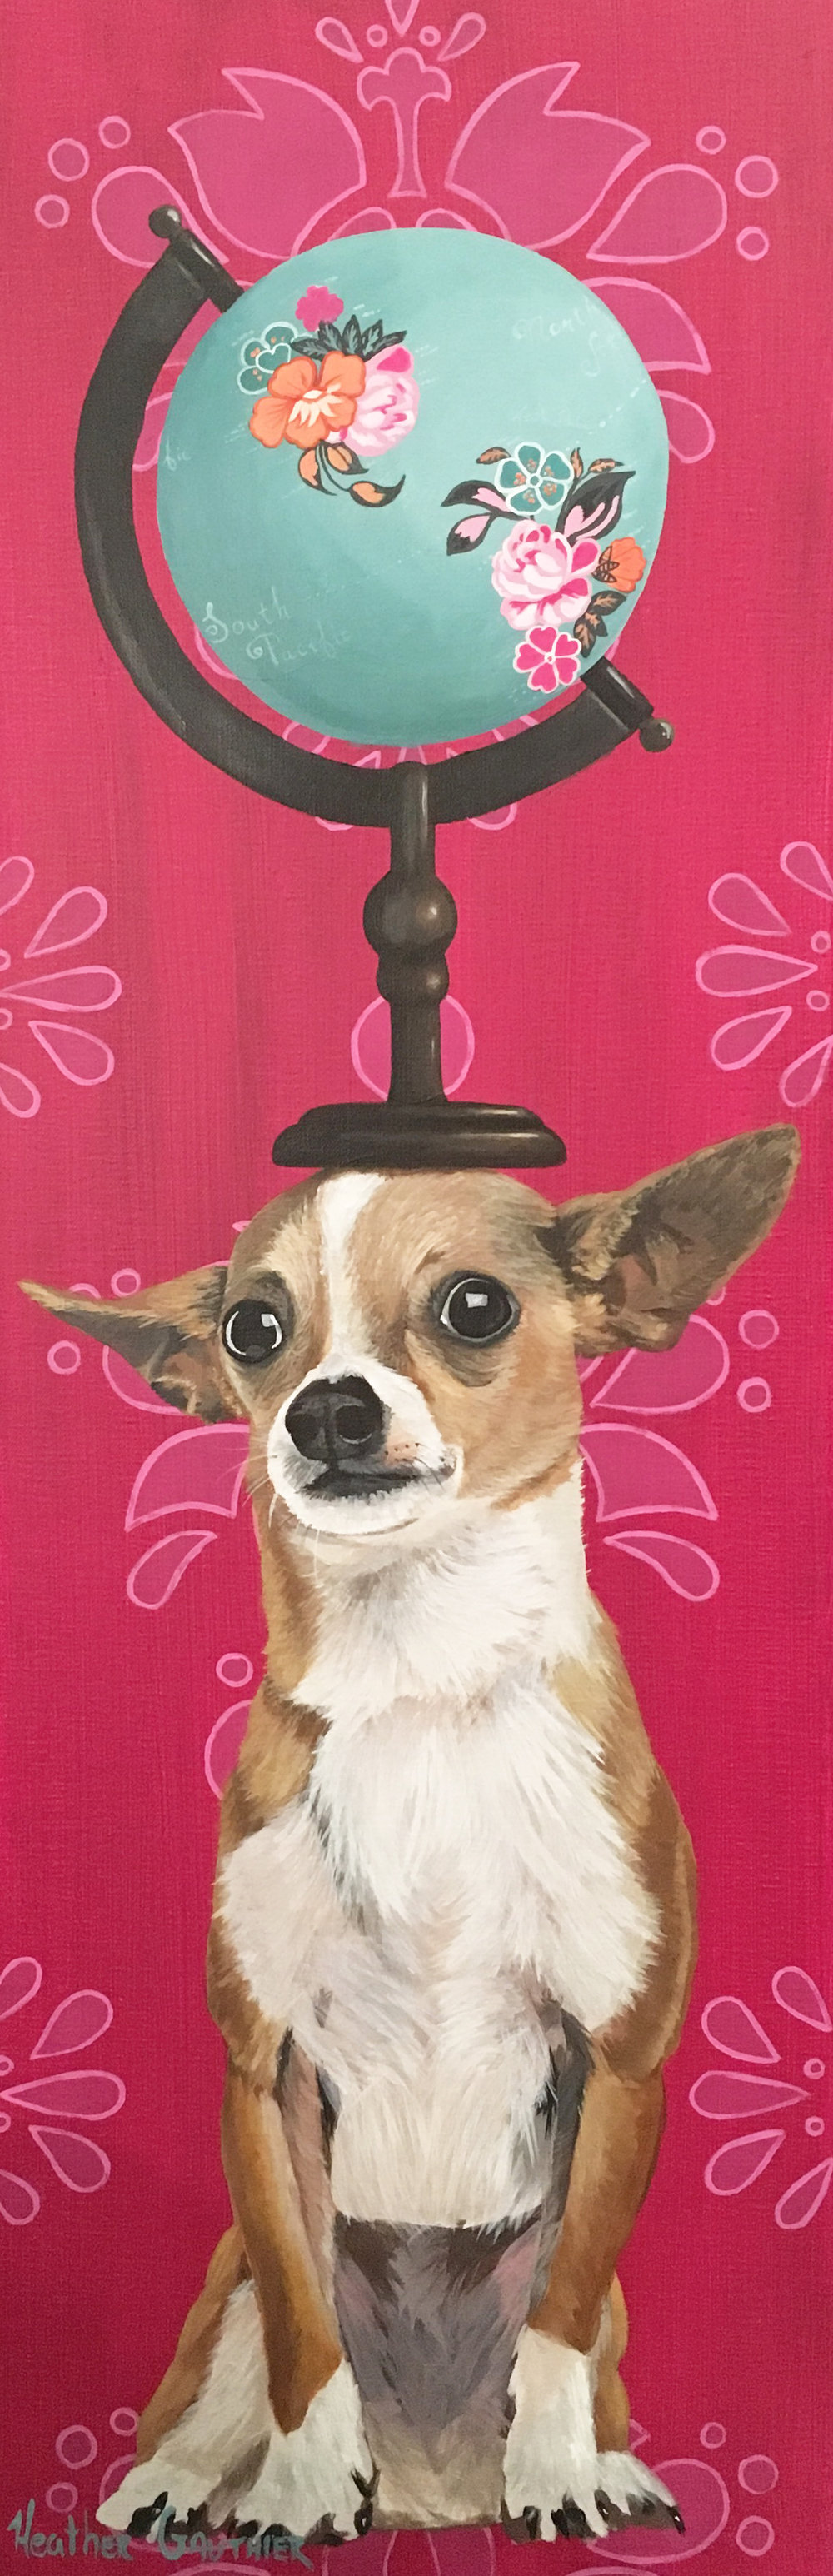 InternationalChihuahua.jpg